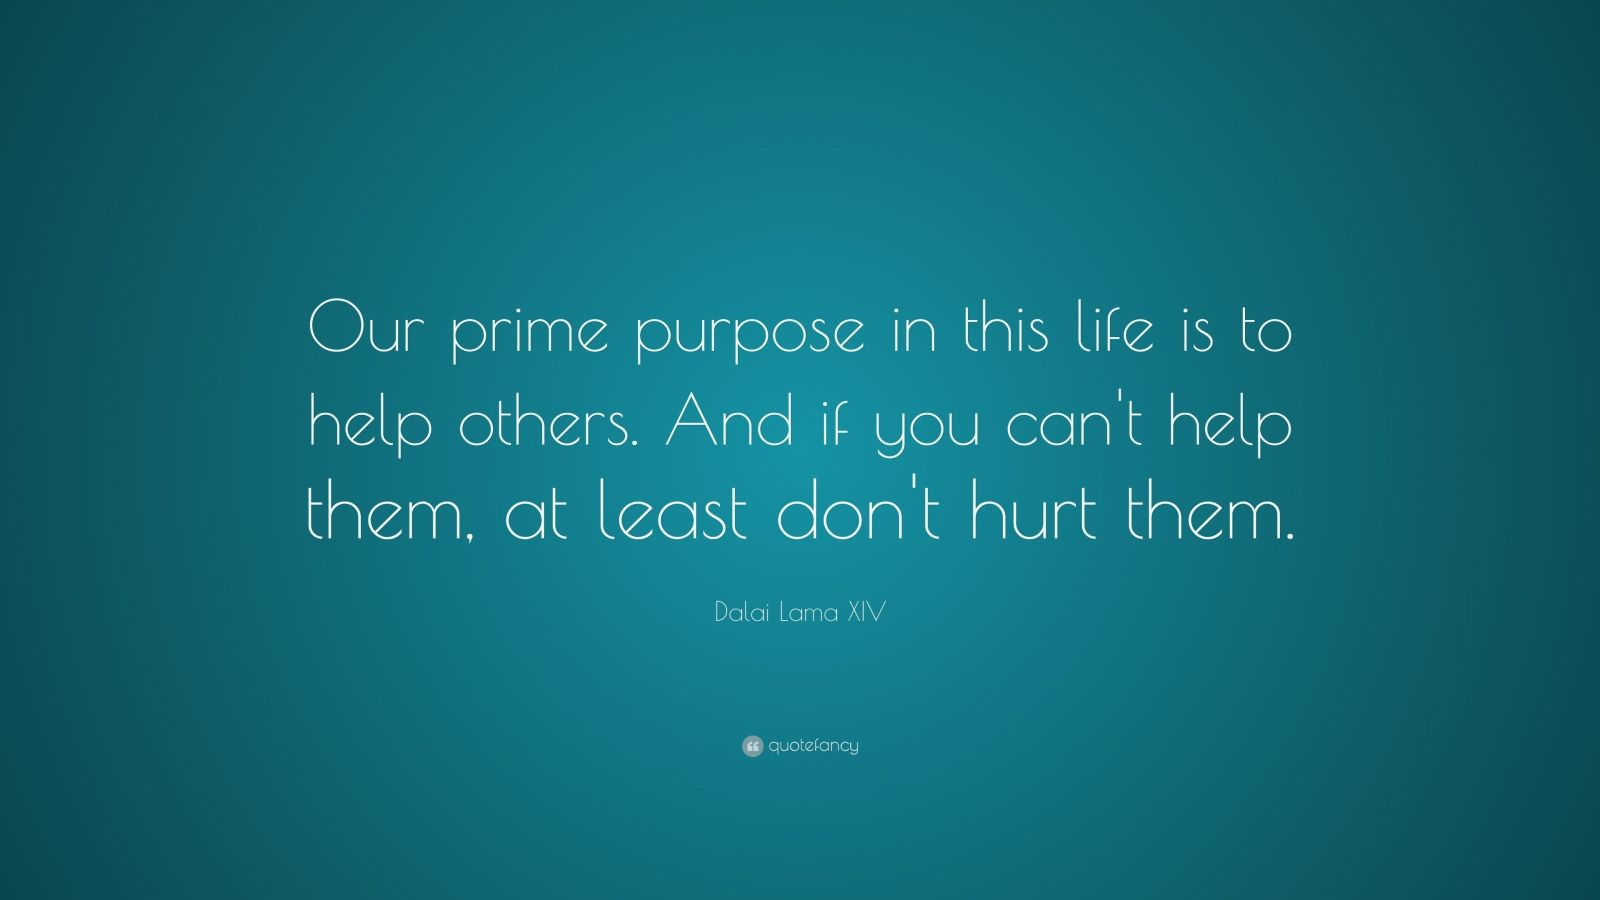 Brian Tracy Quotes Wallpaper Dalai Lama Xiv Quote Our Prime Purpose In This Life Is